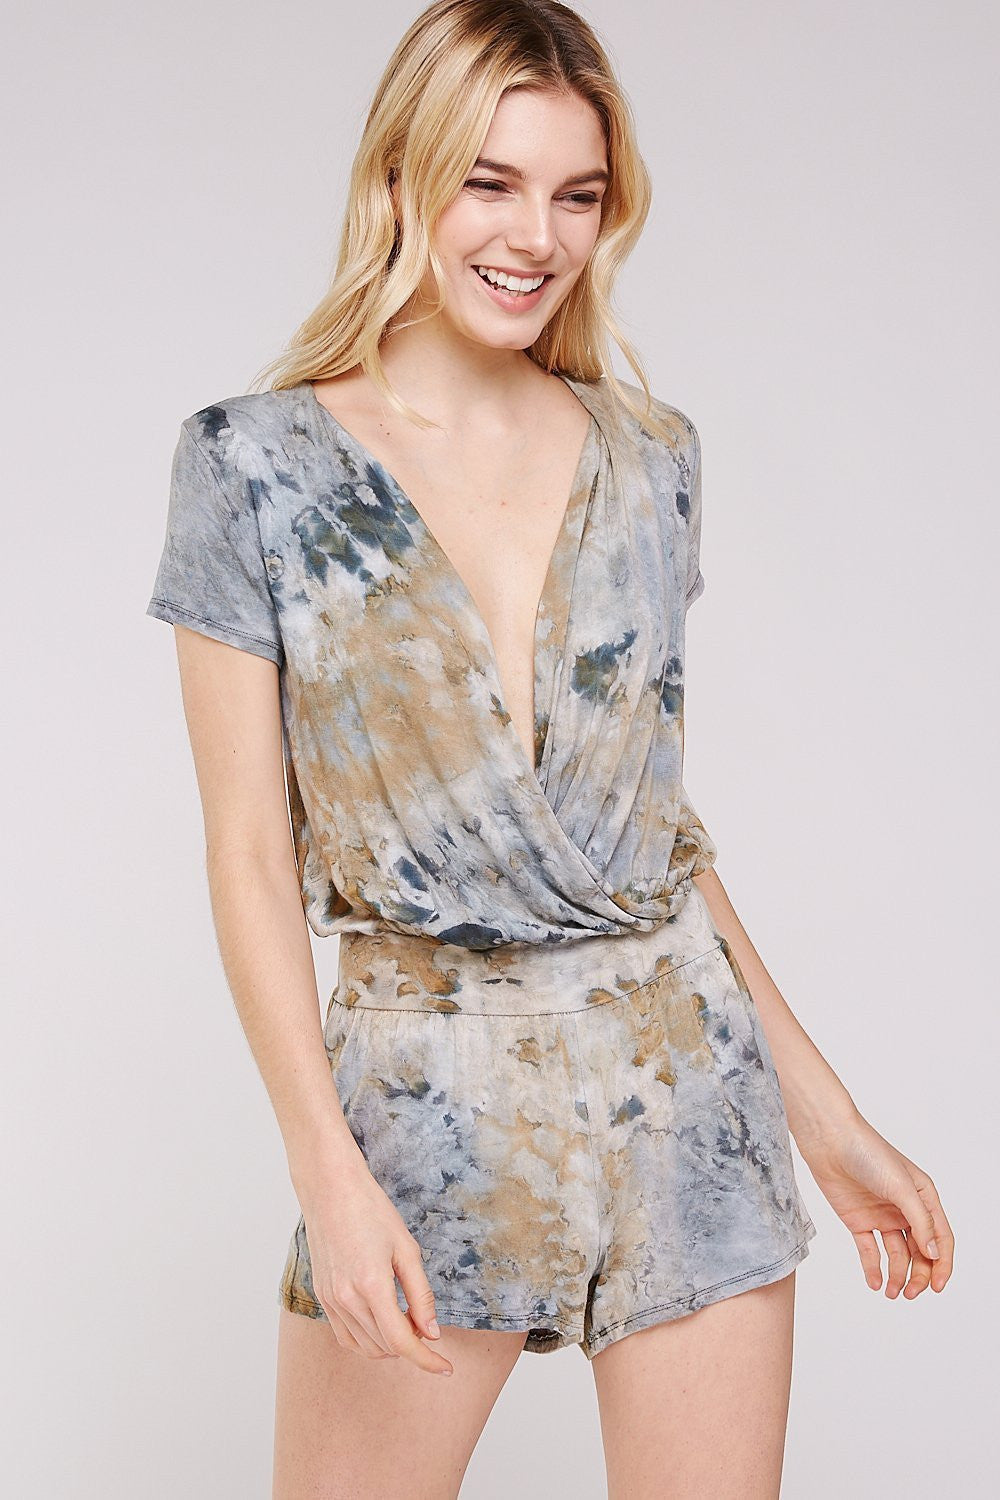 Wholesale Clothing, Online Wholesale Clothing, Women Clothing, Bohemian, Free People, tiedye, specialty wash, wholesale seller, wholesale women clothing shop, gypsy look, USA made, URBAN X APPAREL-ROMPERS-URP9720, fashiontrend2019